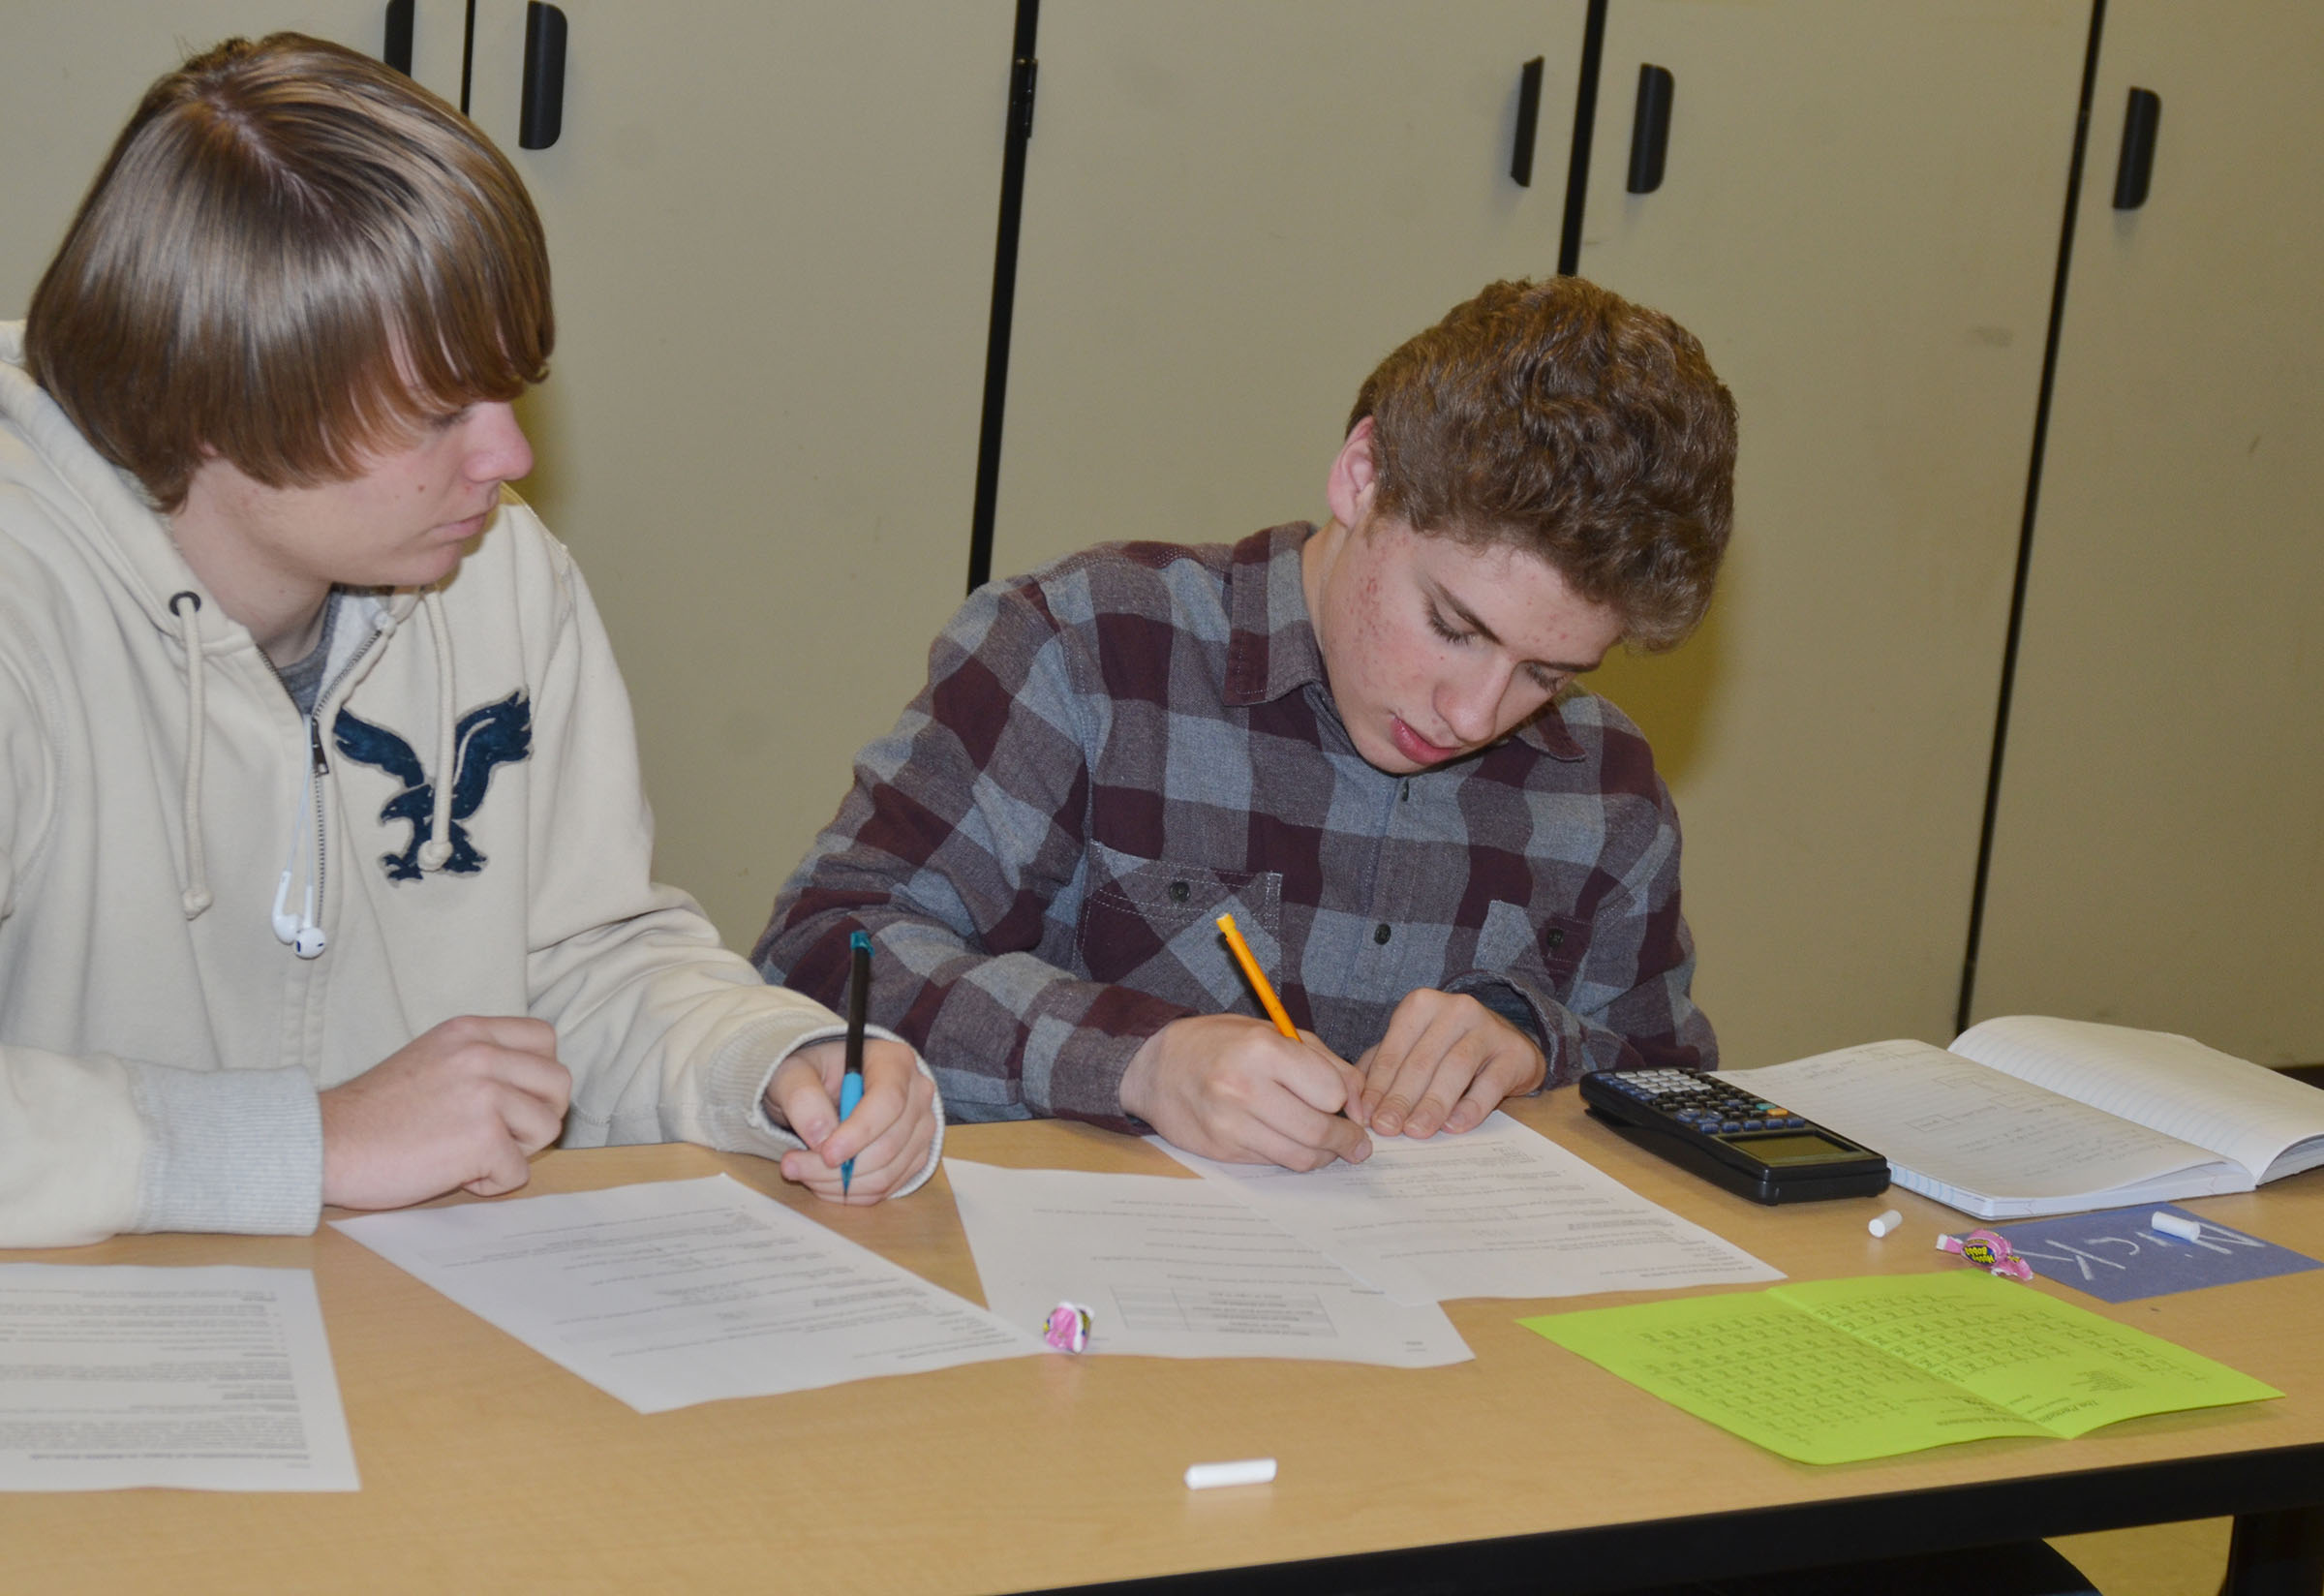 CHS juniors Nathaniel Mills, at left, and Nicholas Lefever work on their lab questions together.